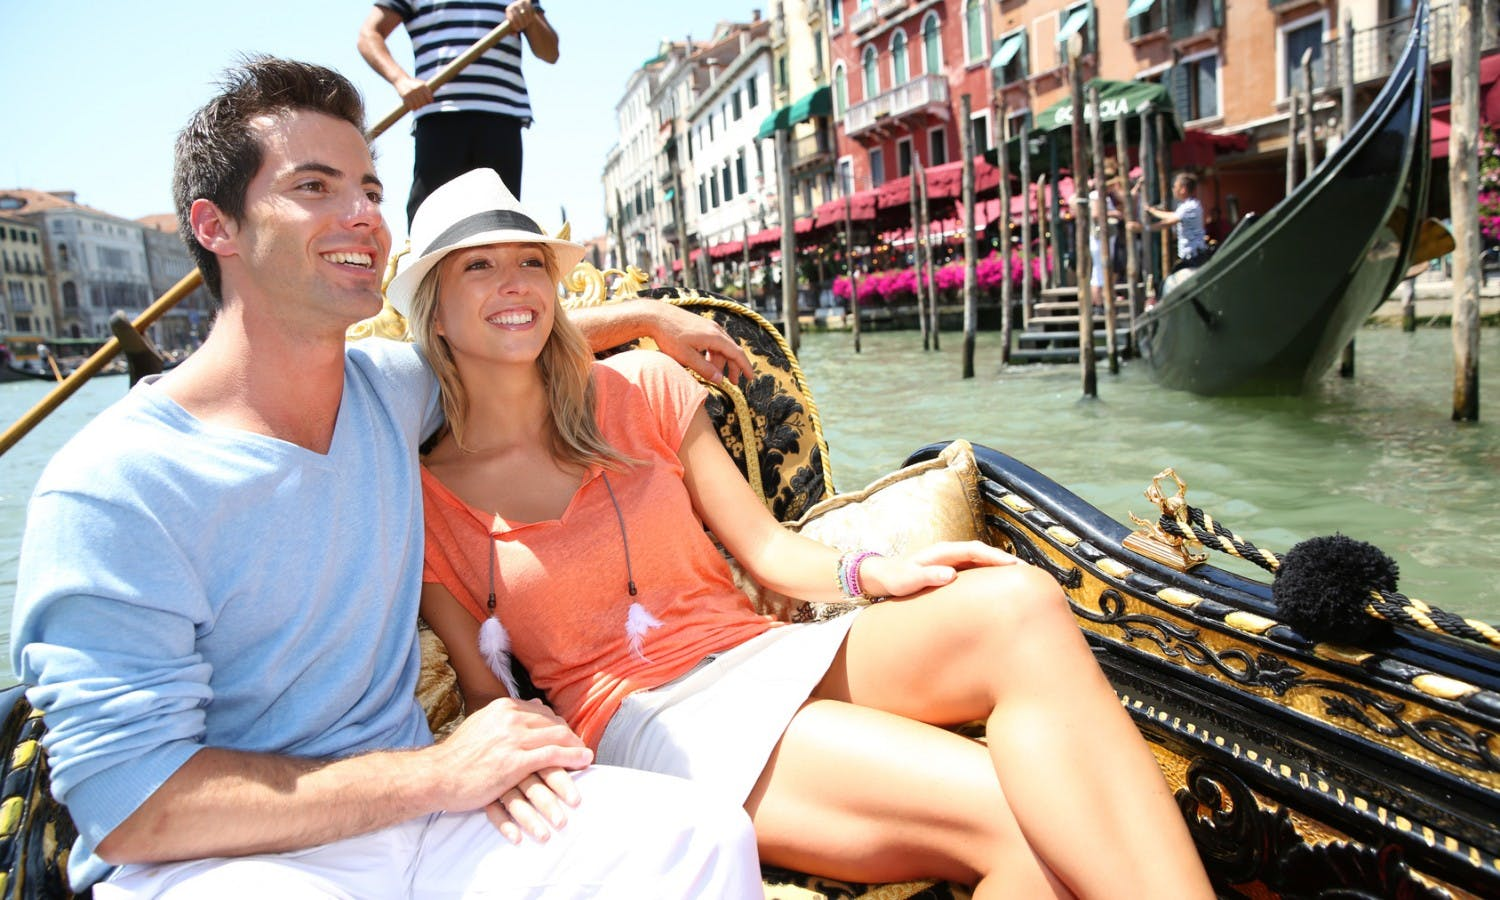 Couple in Venice having a Gondola ride on canal grande_Fotolia_53631928.jpg